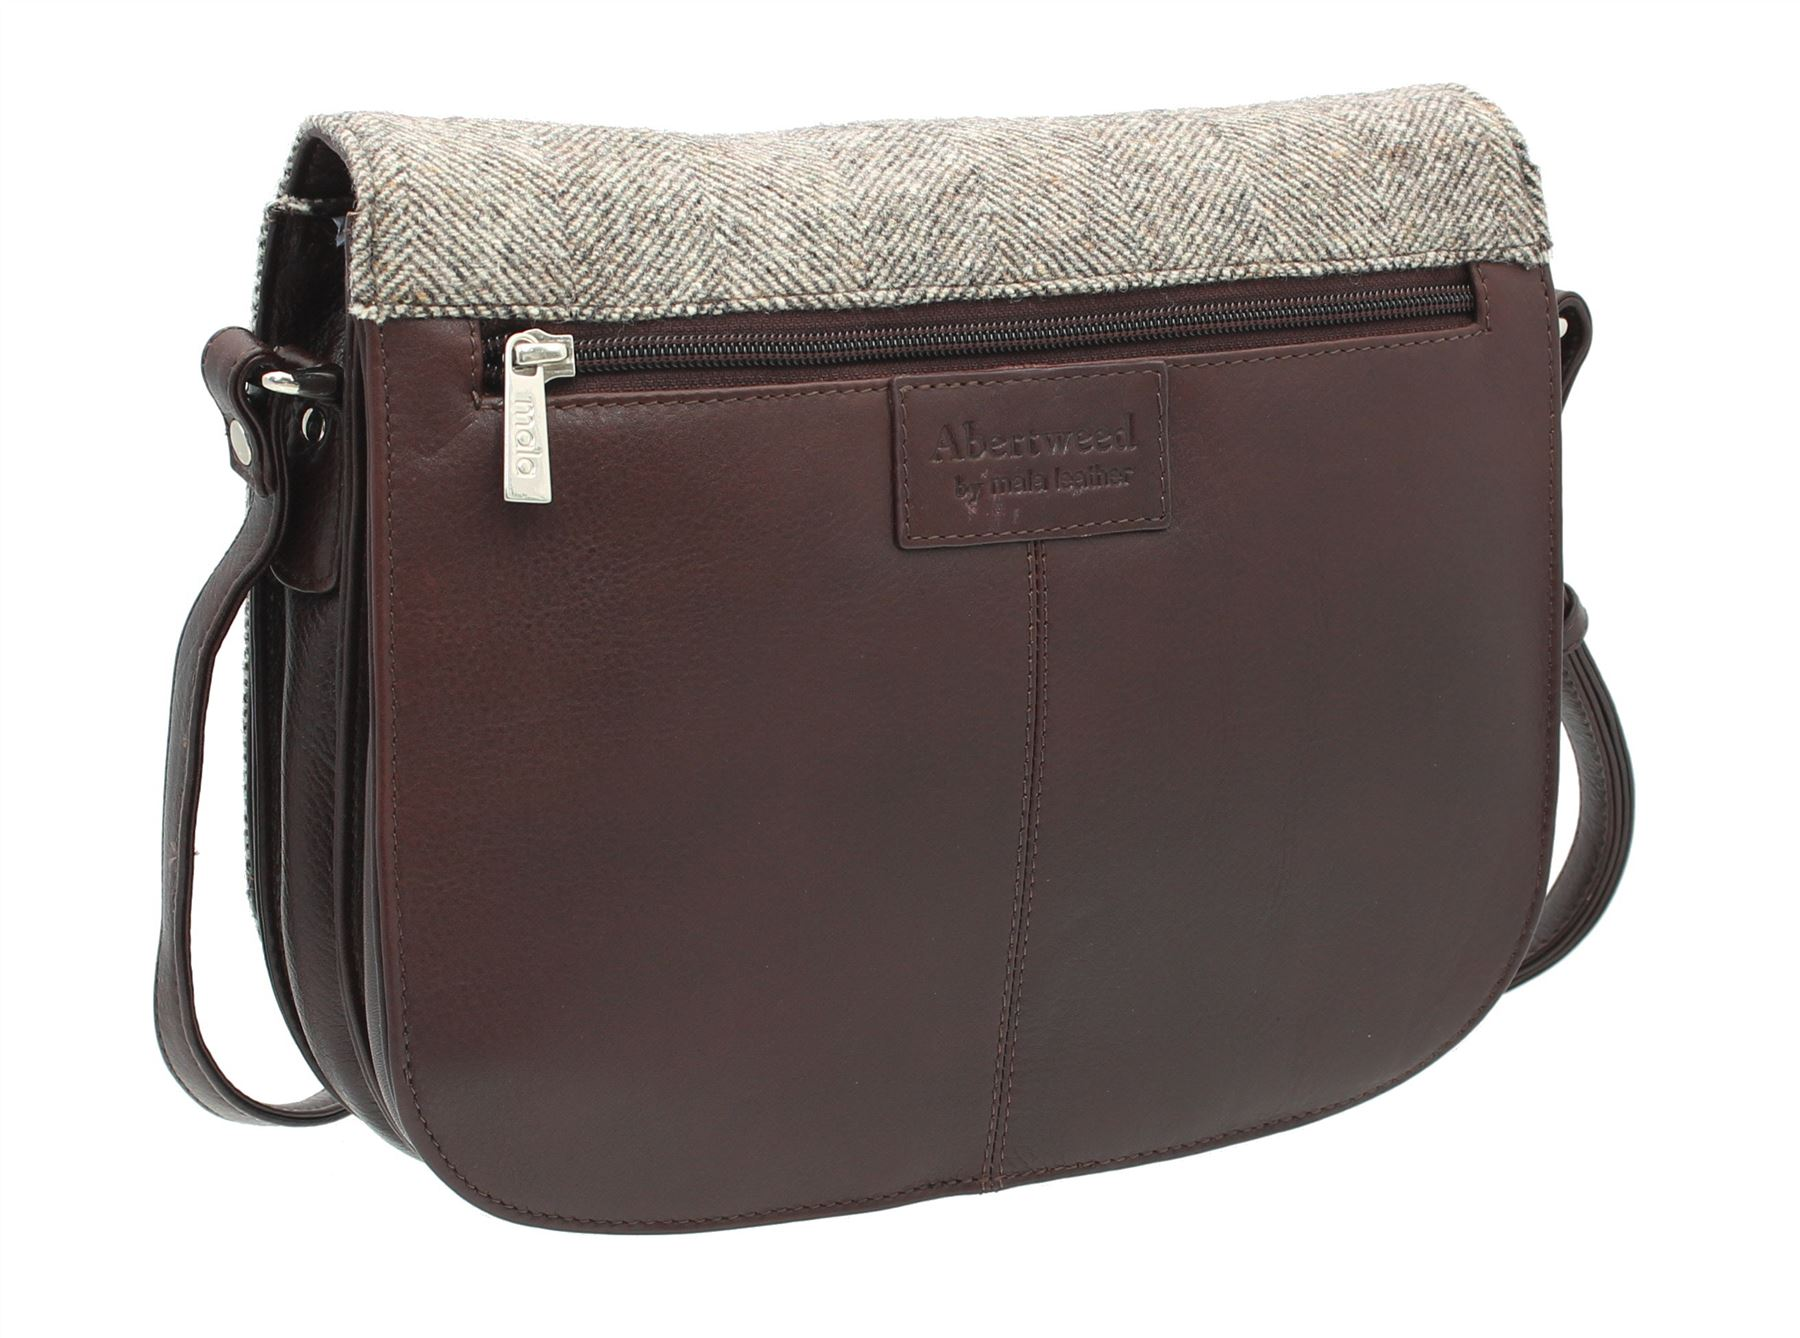 Abertweed 40 Leather 748 amp; Mala Bag Herringbone Tweed Collection Shoulder vPxw5wUqZ